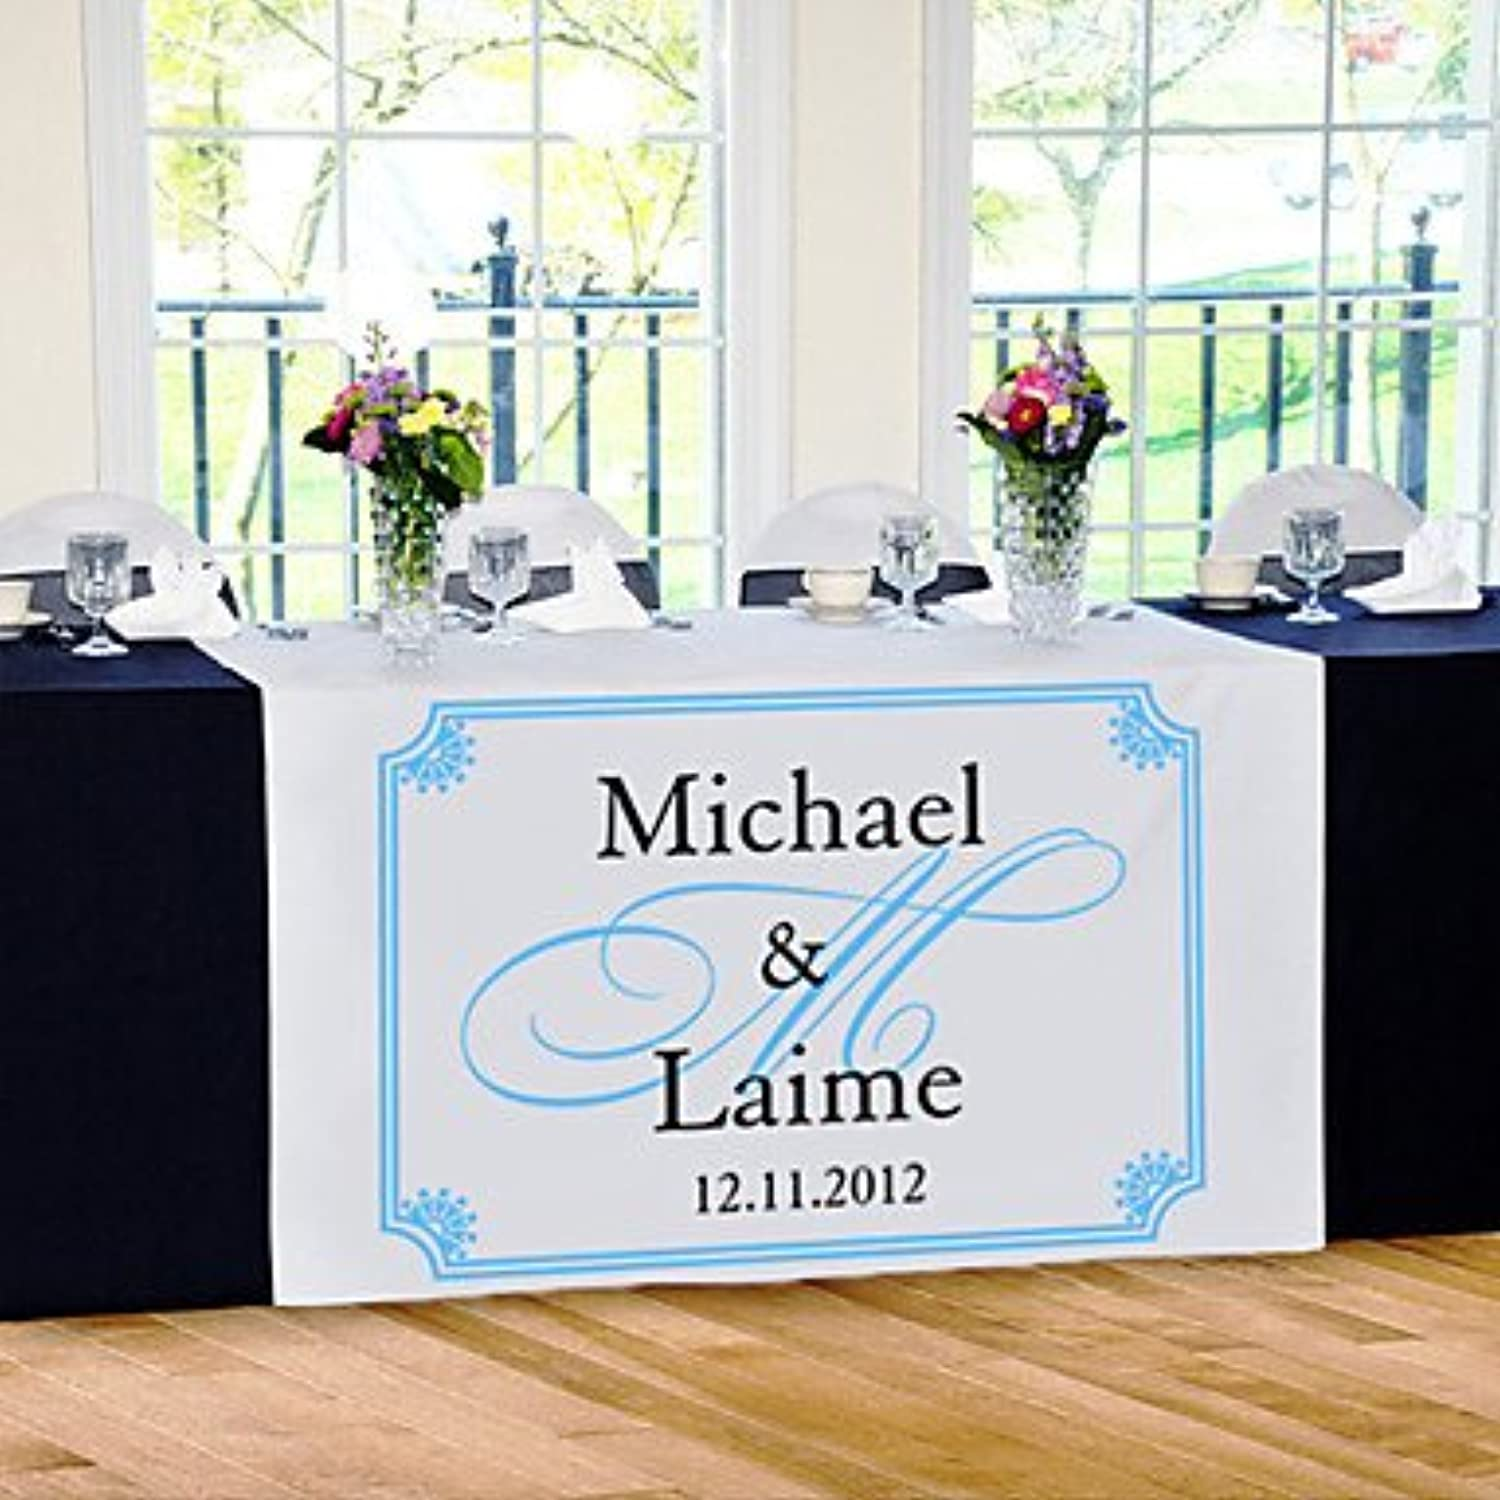 BST Wedding Favors Table Centerpieces Personalize Reception Desk Table Runner - Elegance Table Deocrations